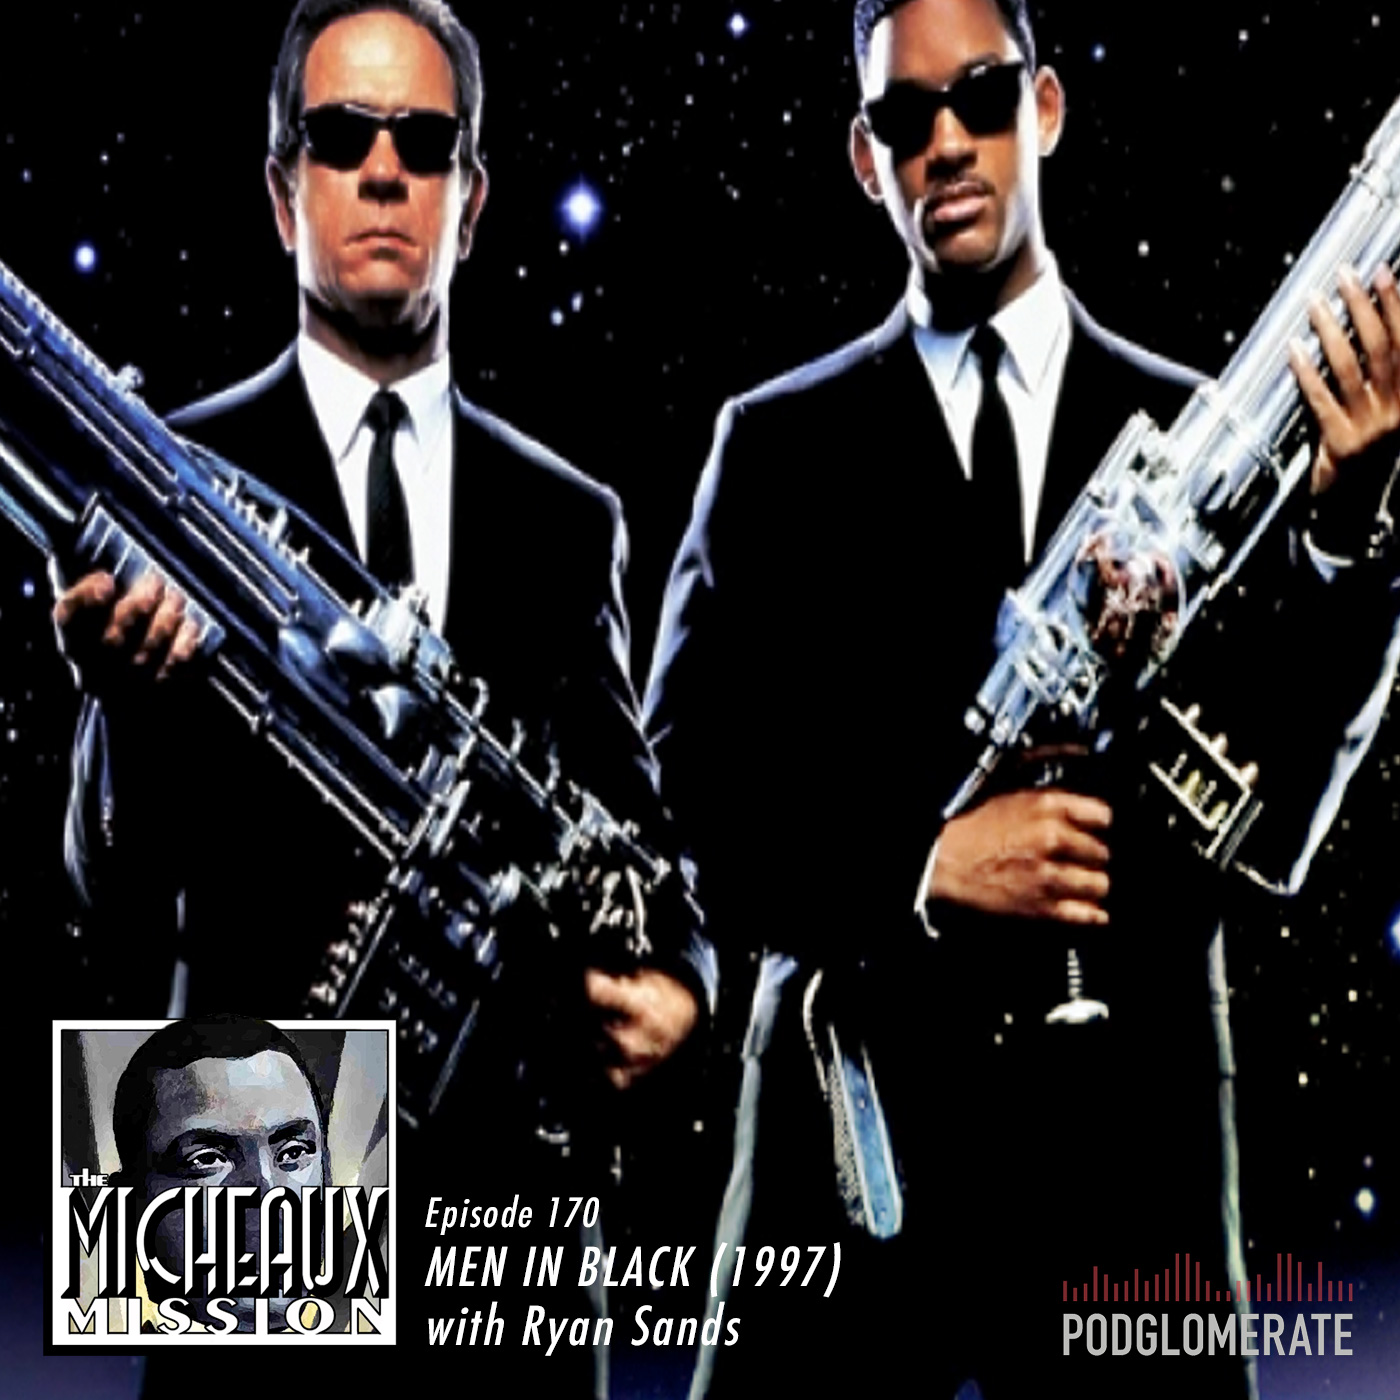 Men In Black (1997) with Ryan Sands